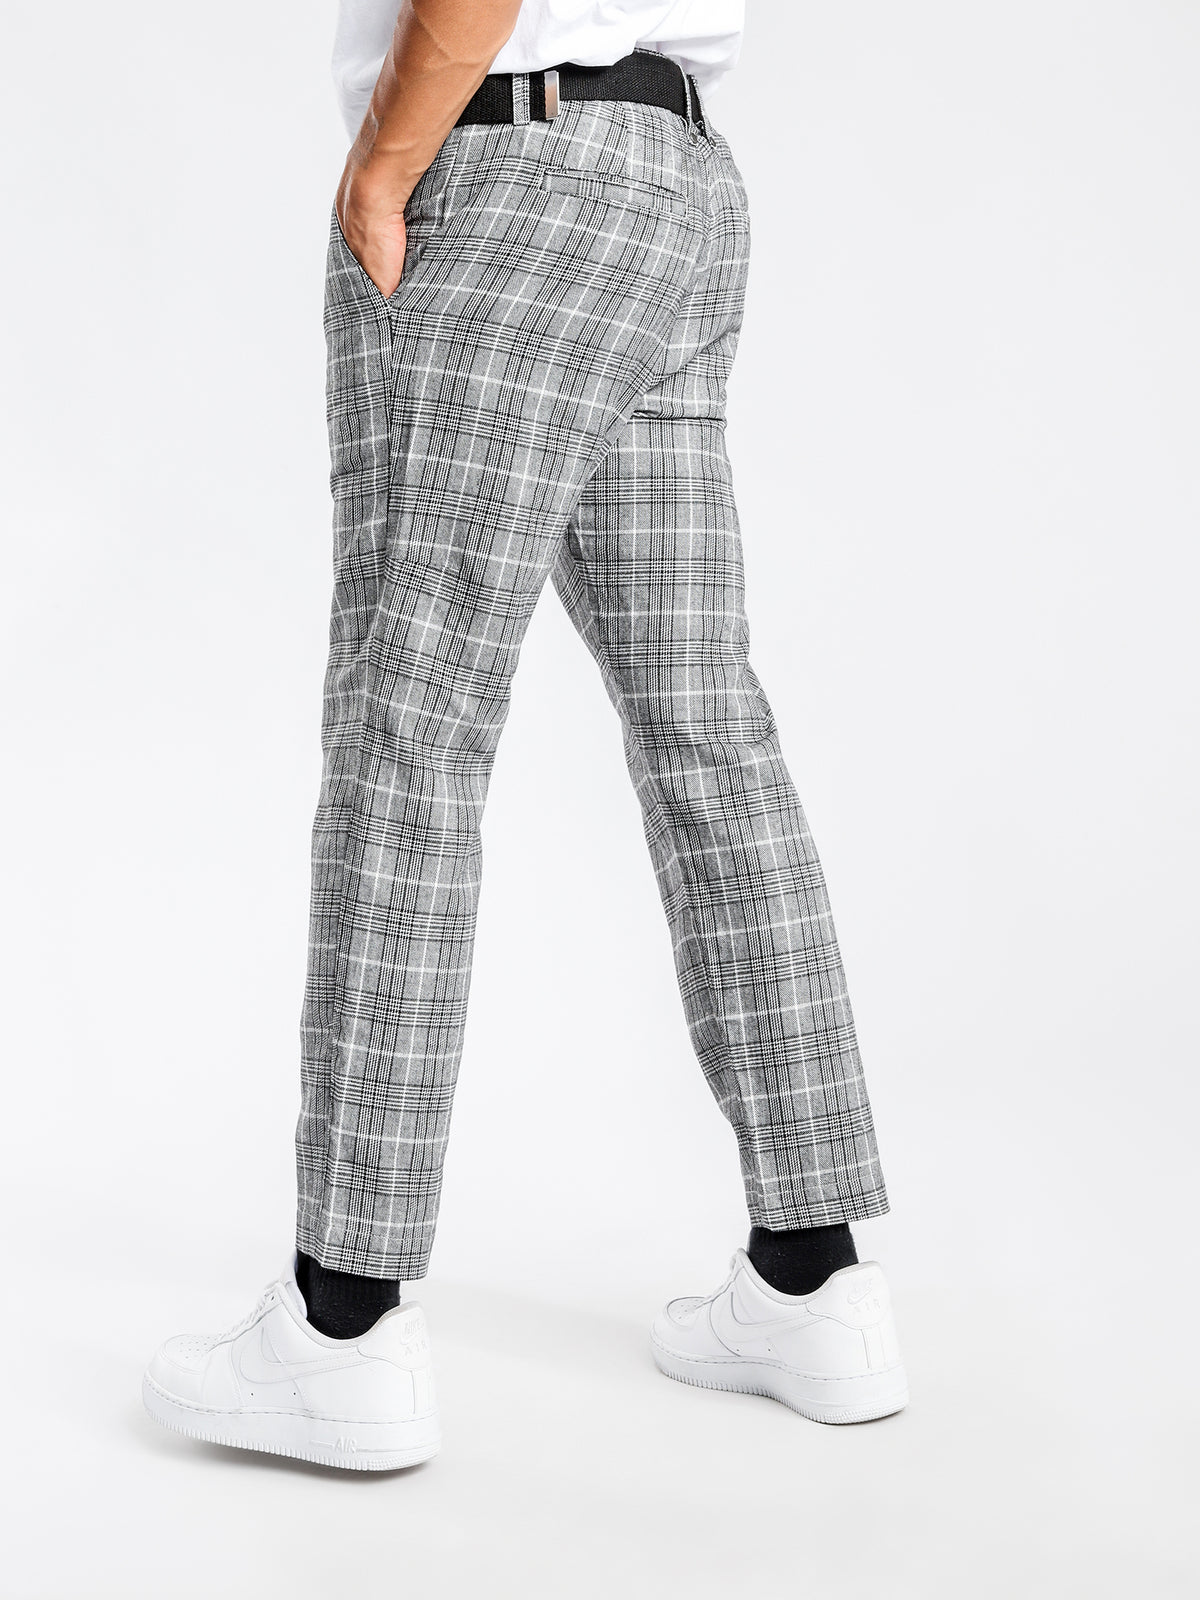 London Check Cropped Chino in Black & White